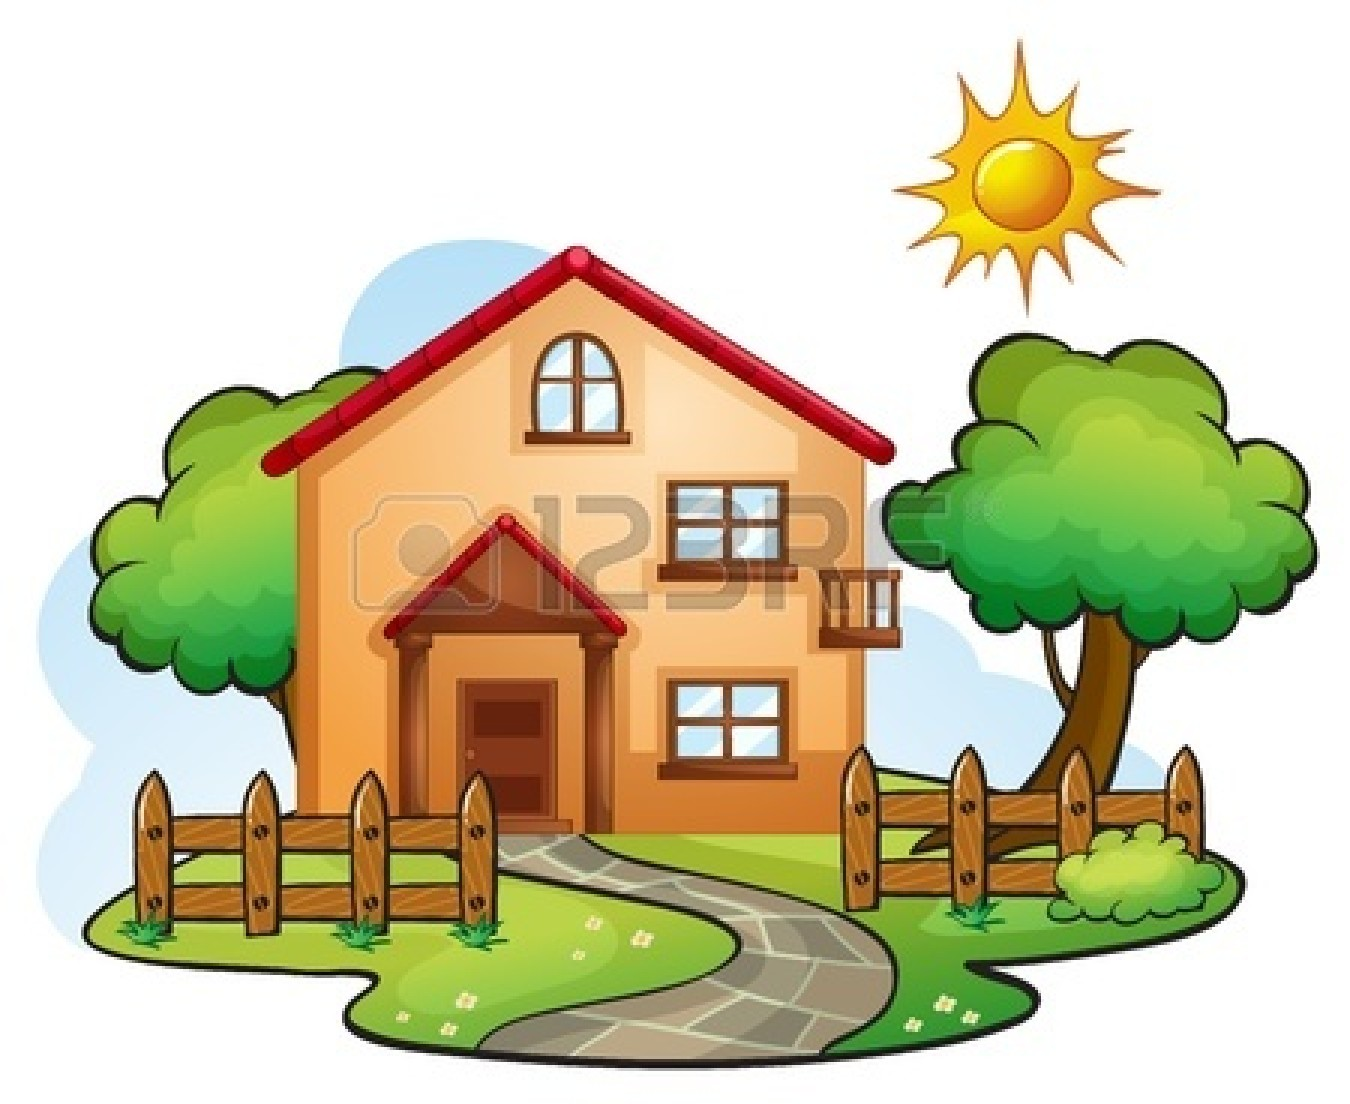 Cute House Illustration | Clipart Panda - Free Clipart Images